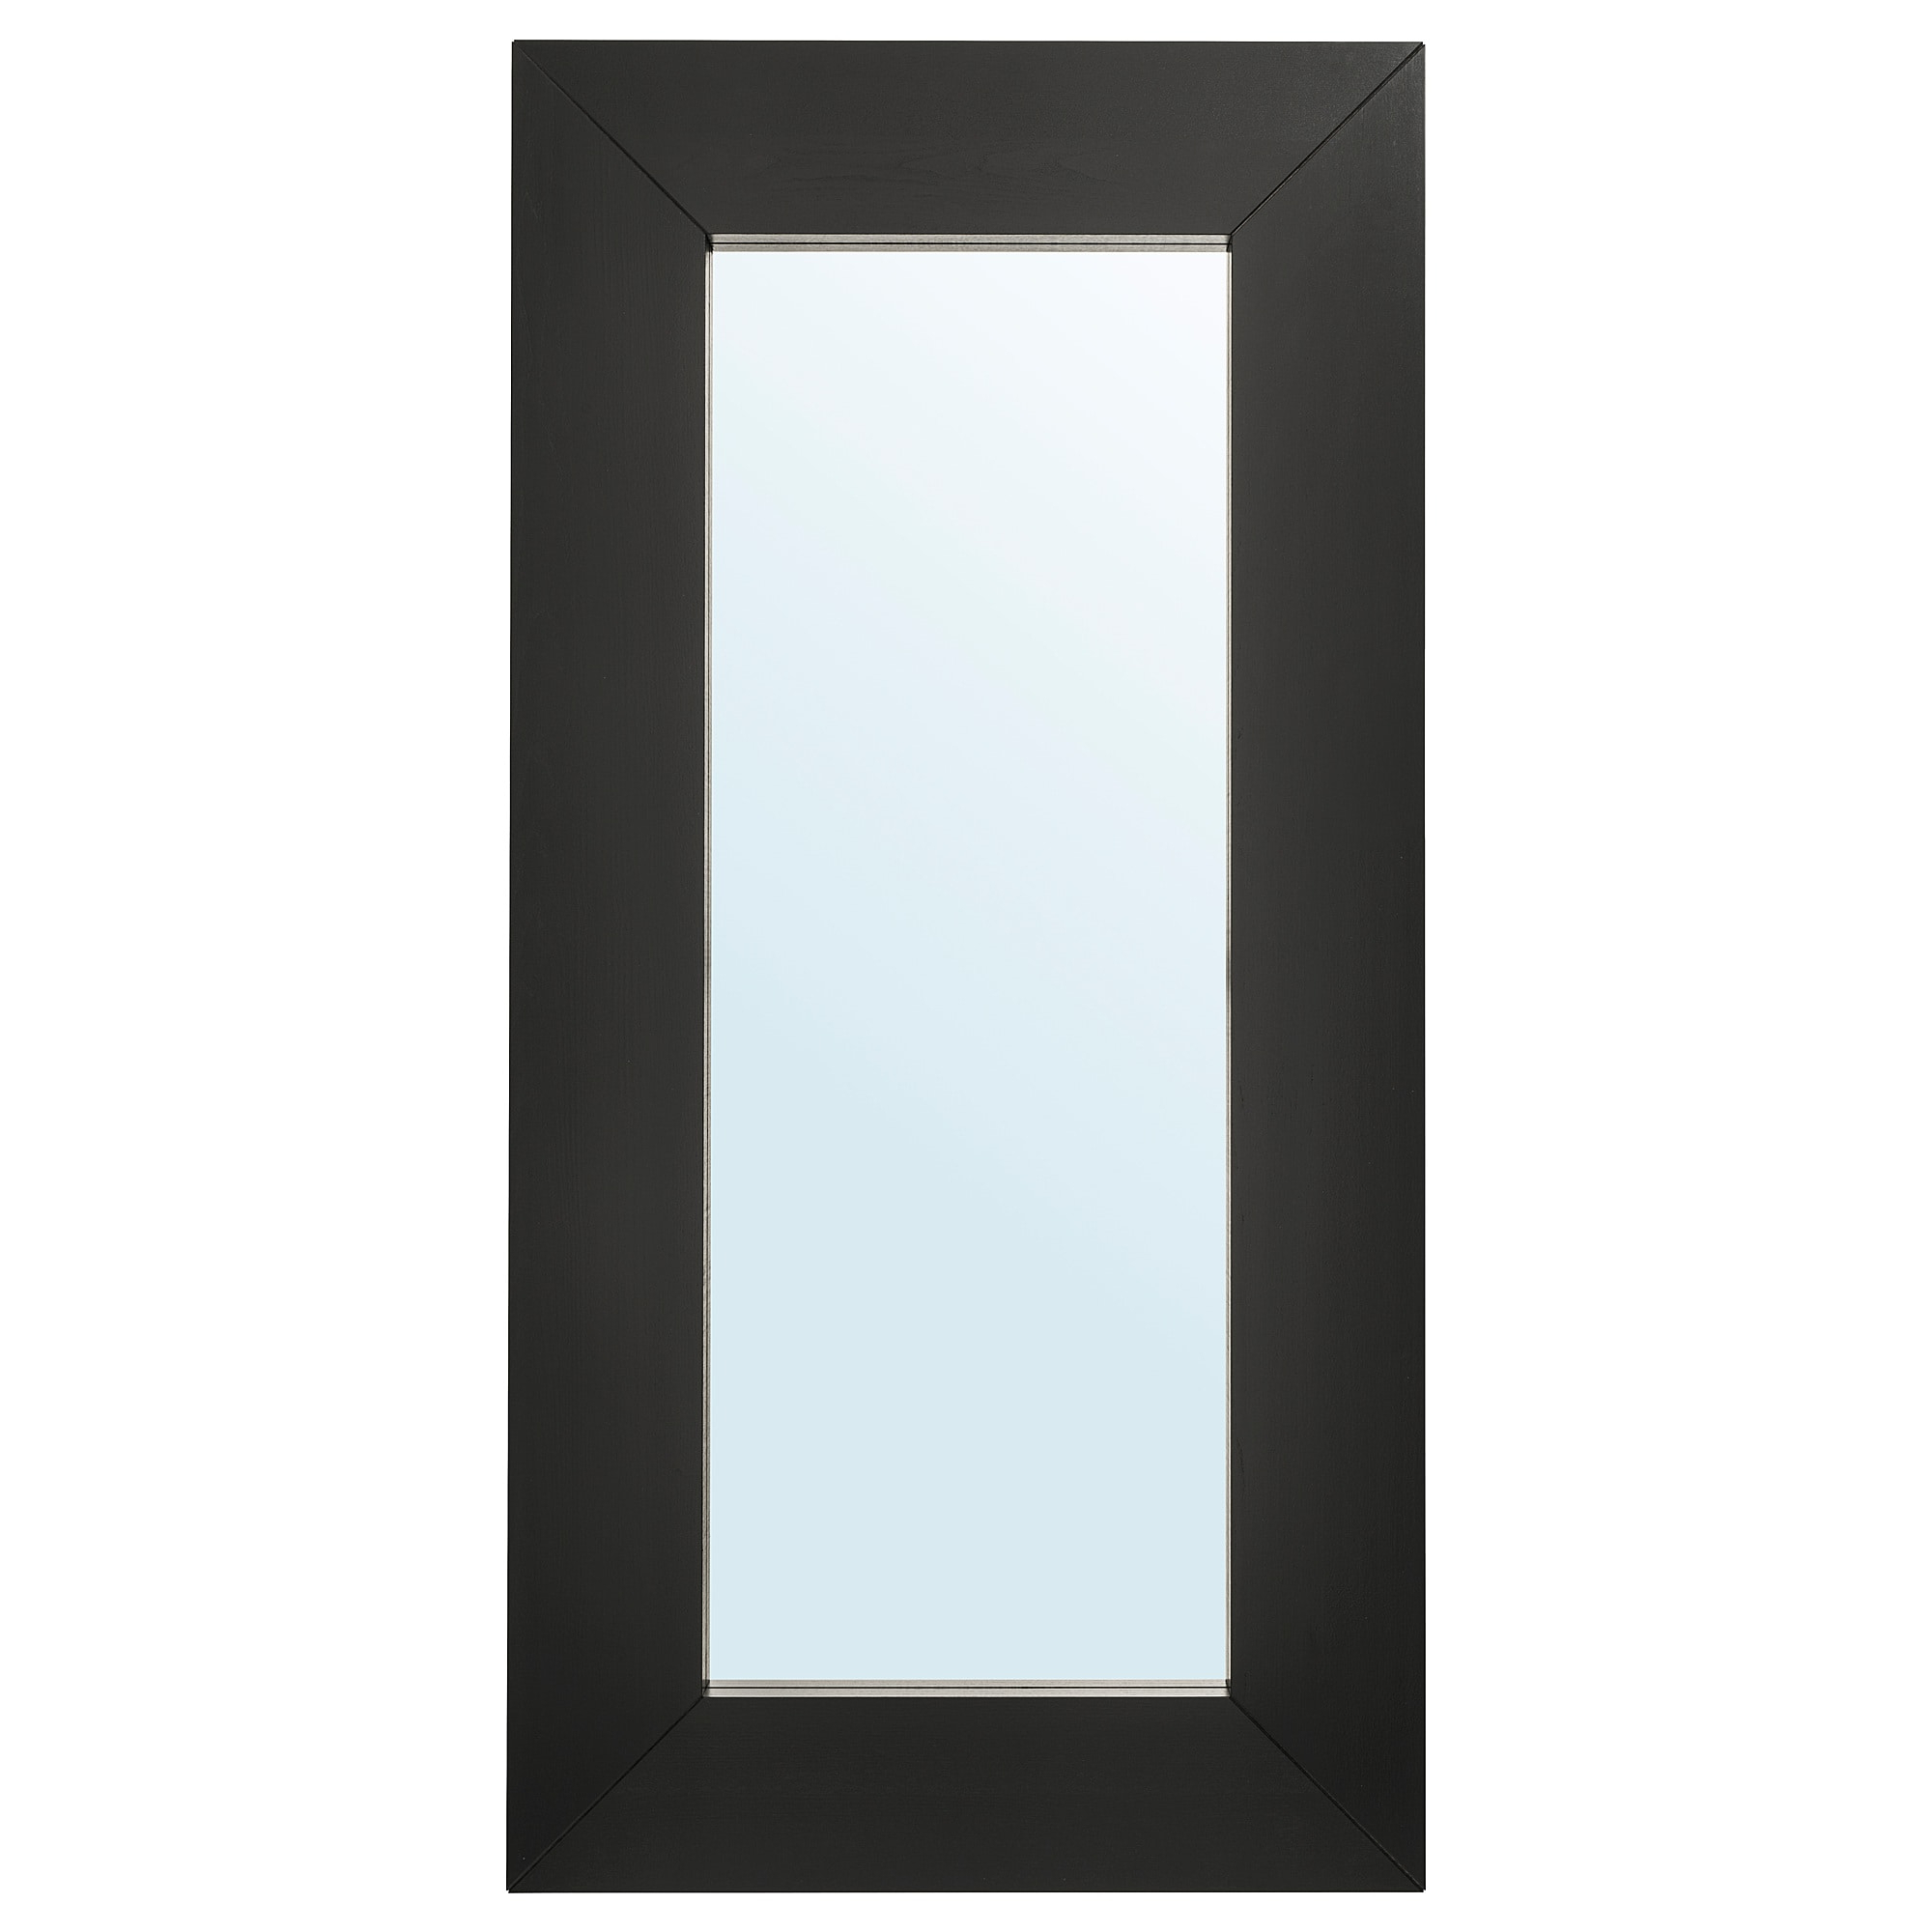 Mongstad Mirror, Black Brown Within Most Recent Ikea Wall Mirrors (Gallery 1 of 20)